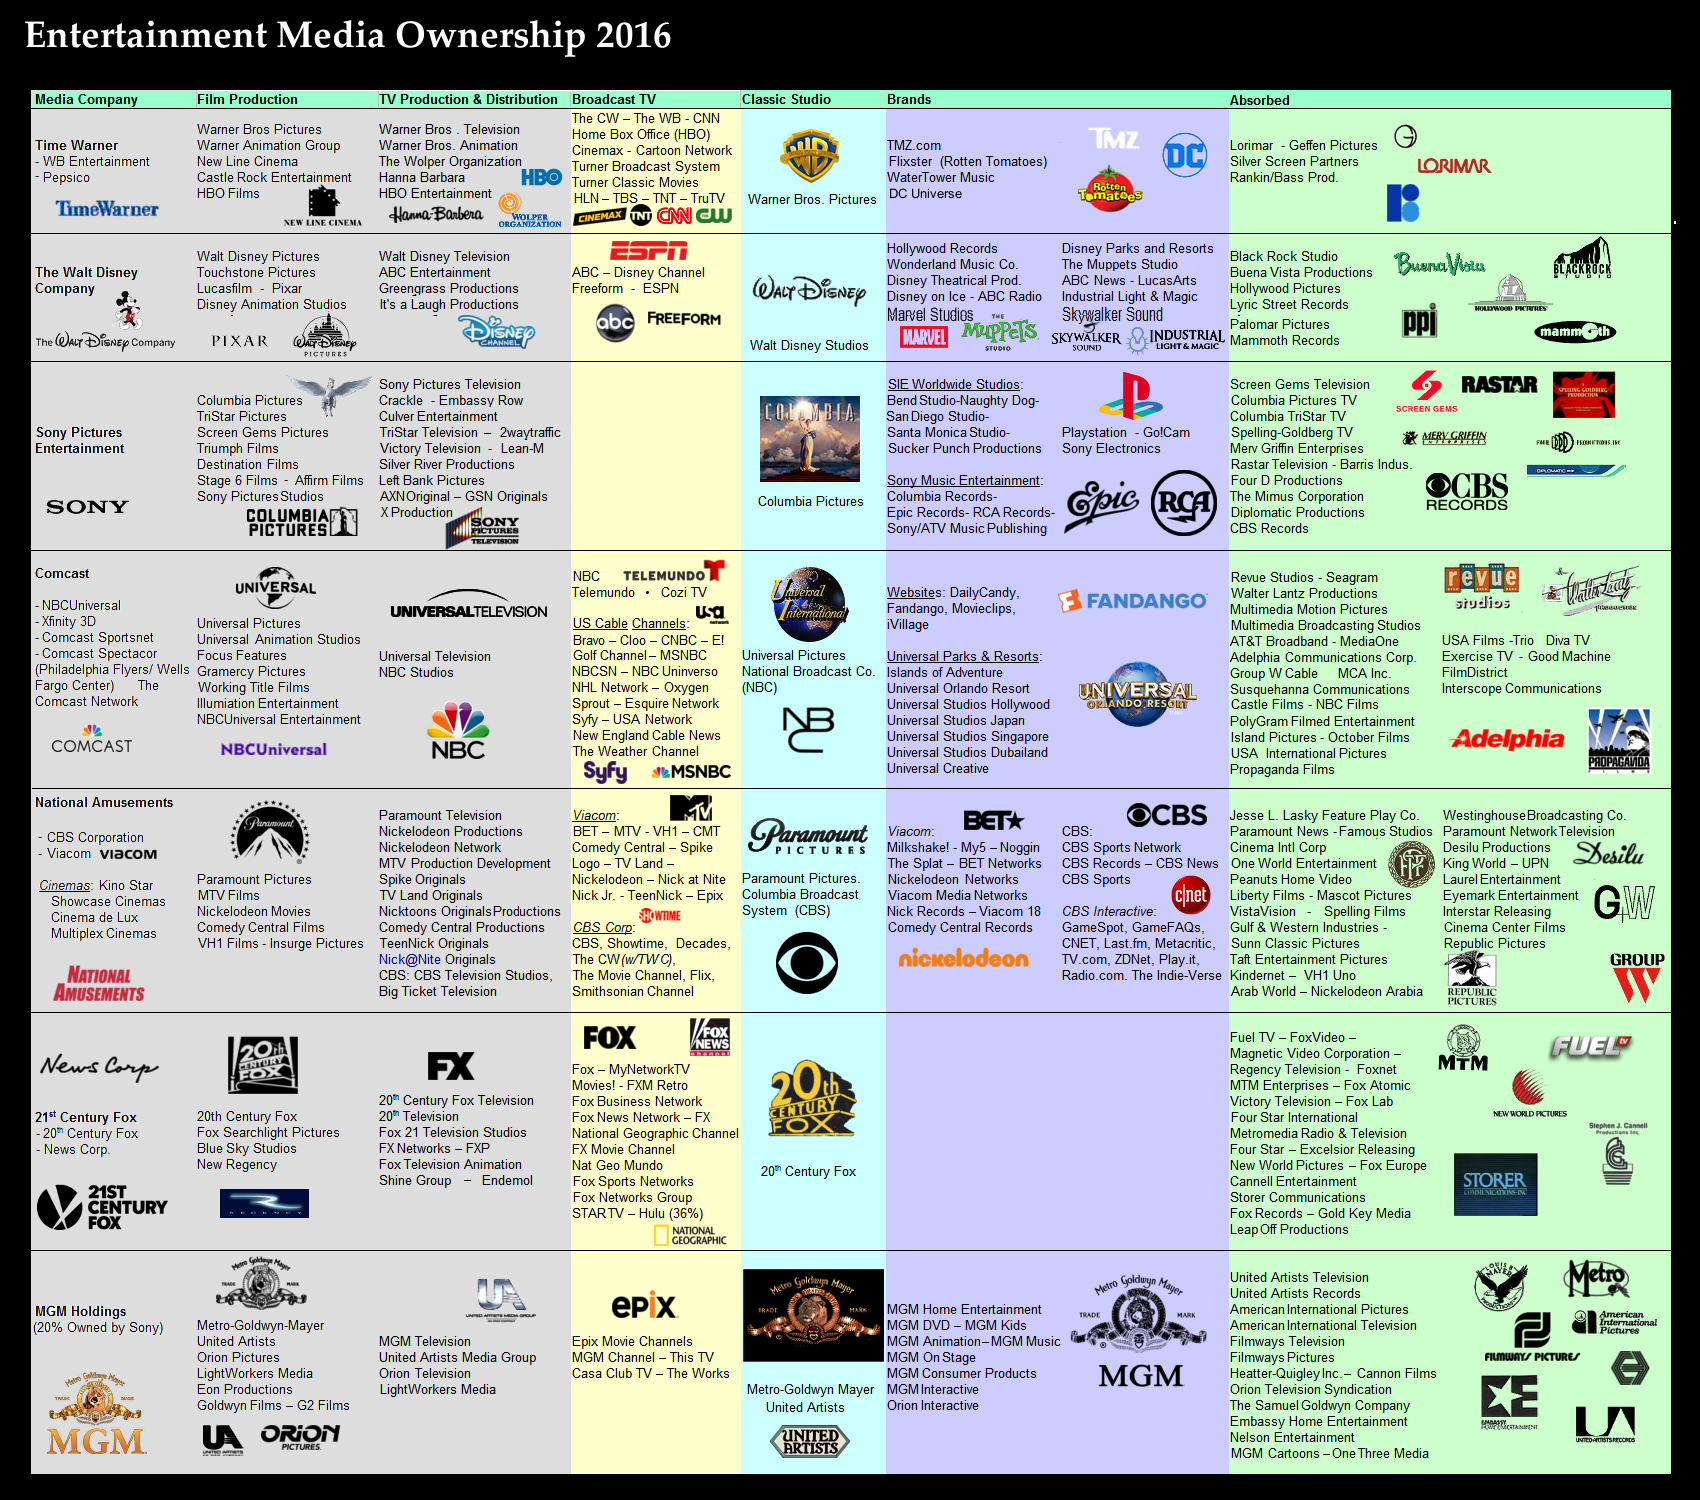 Media Ownership Chart With Logos 2016